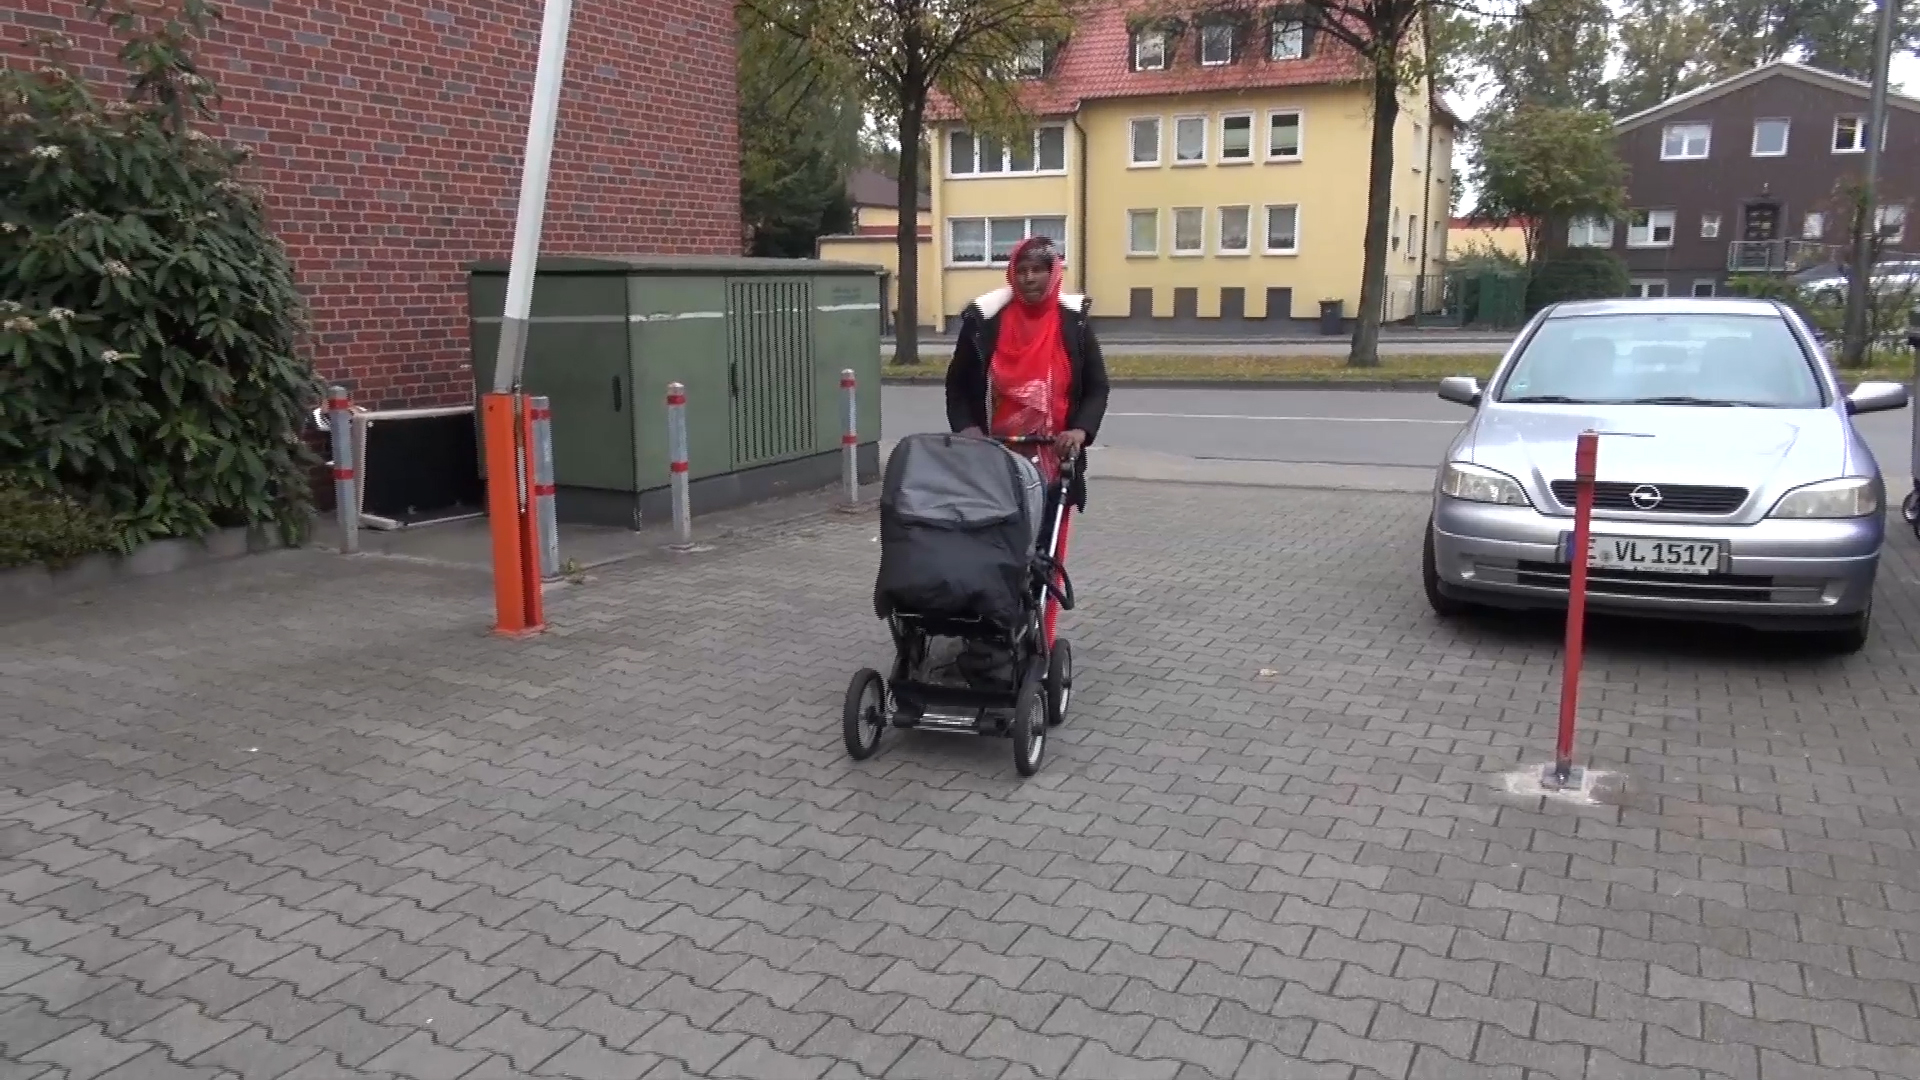 Somali migrant mother Rahma Abukar Ali walks her baby daughter, Sophia, in a stroller at a refugee center in a small German town near Duesseldorf, where she is awaiting a response to her application for asylum, Oct. 2015. (A. Osman/VOA)